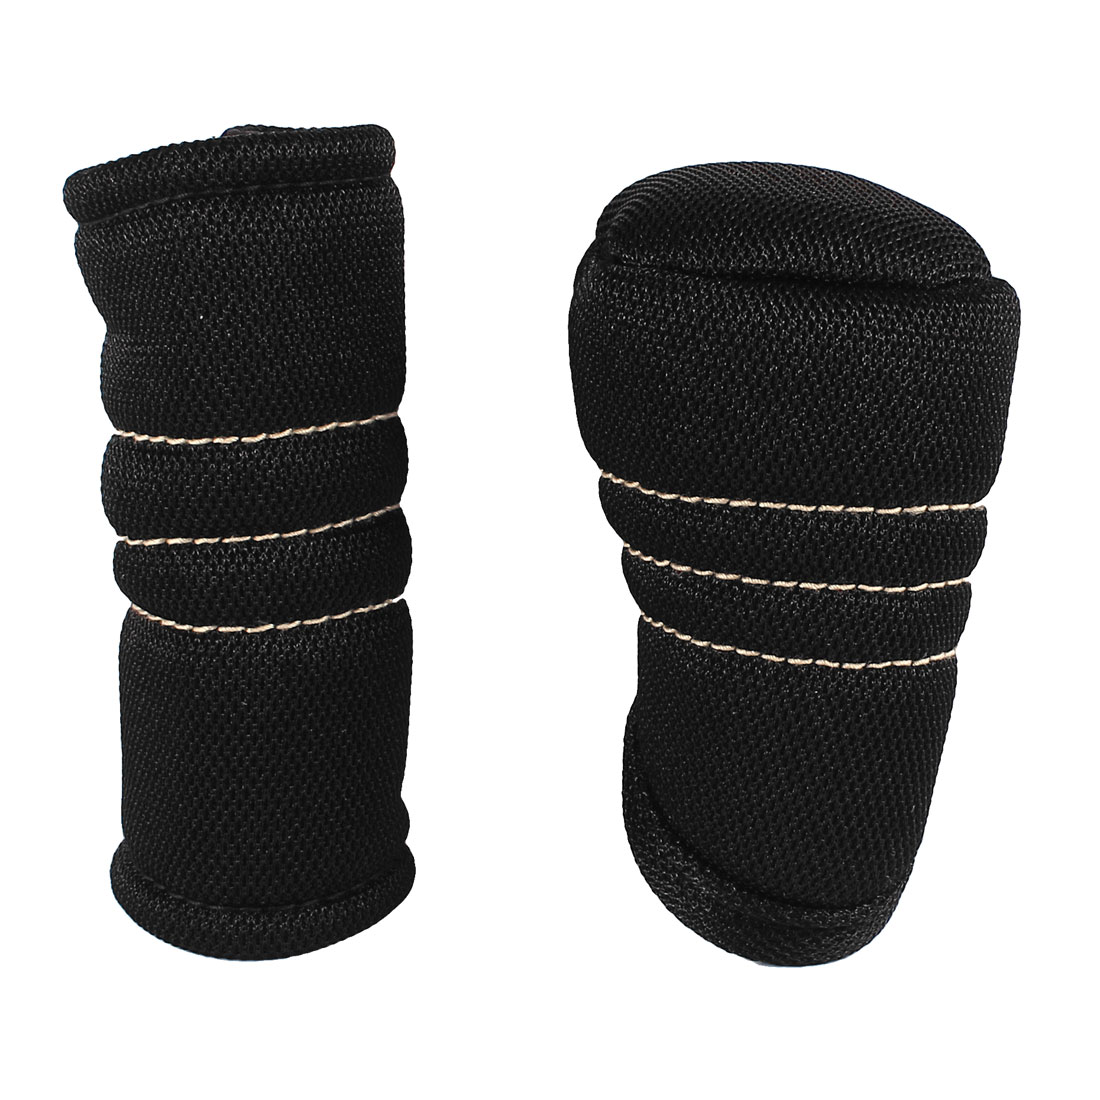 X Autohaux Car Auto Black Nylon Zip Up Gear Shift Knob Cover + Hand Brake Cover Sleeve Protector Pad